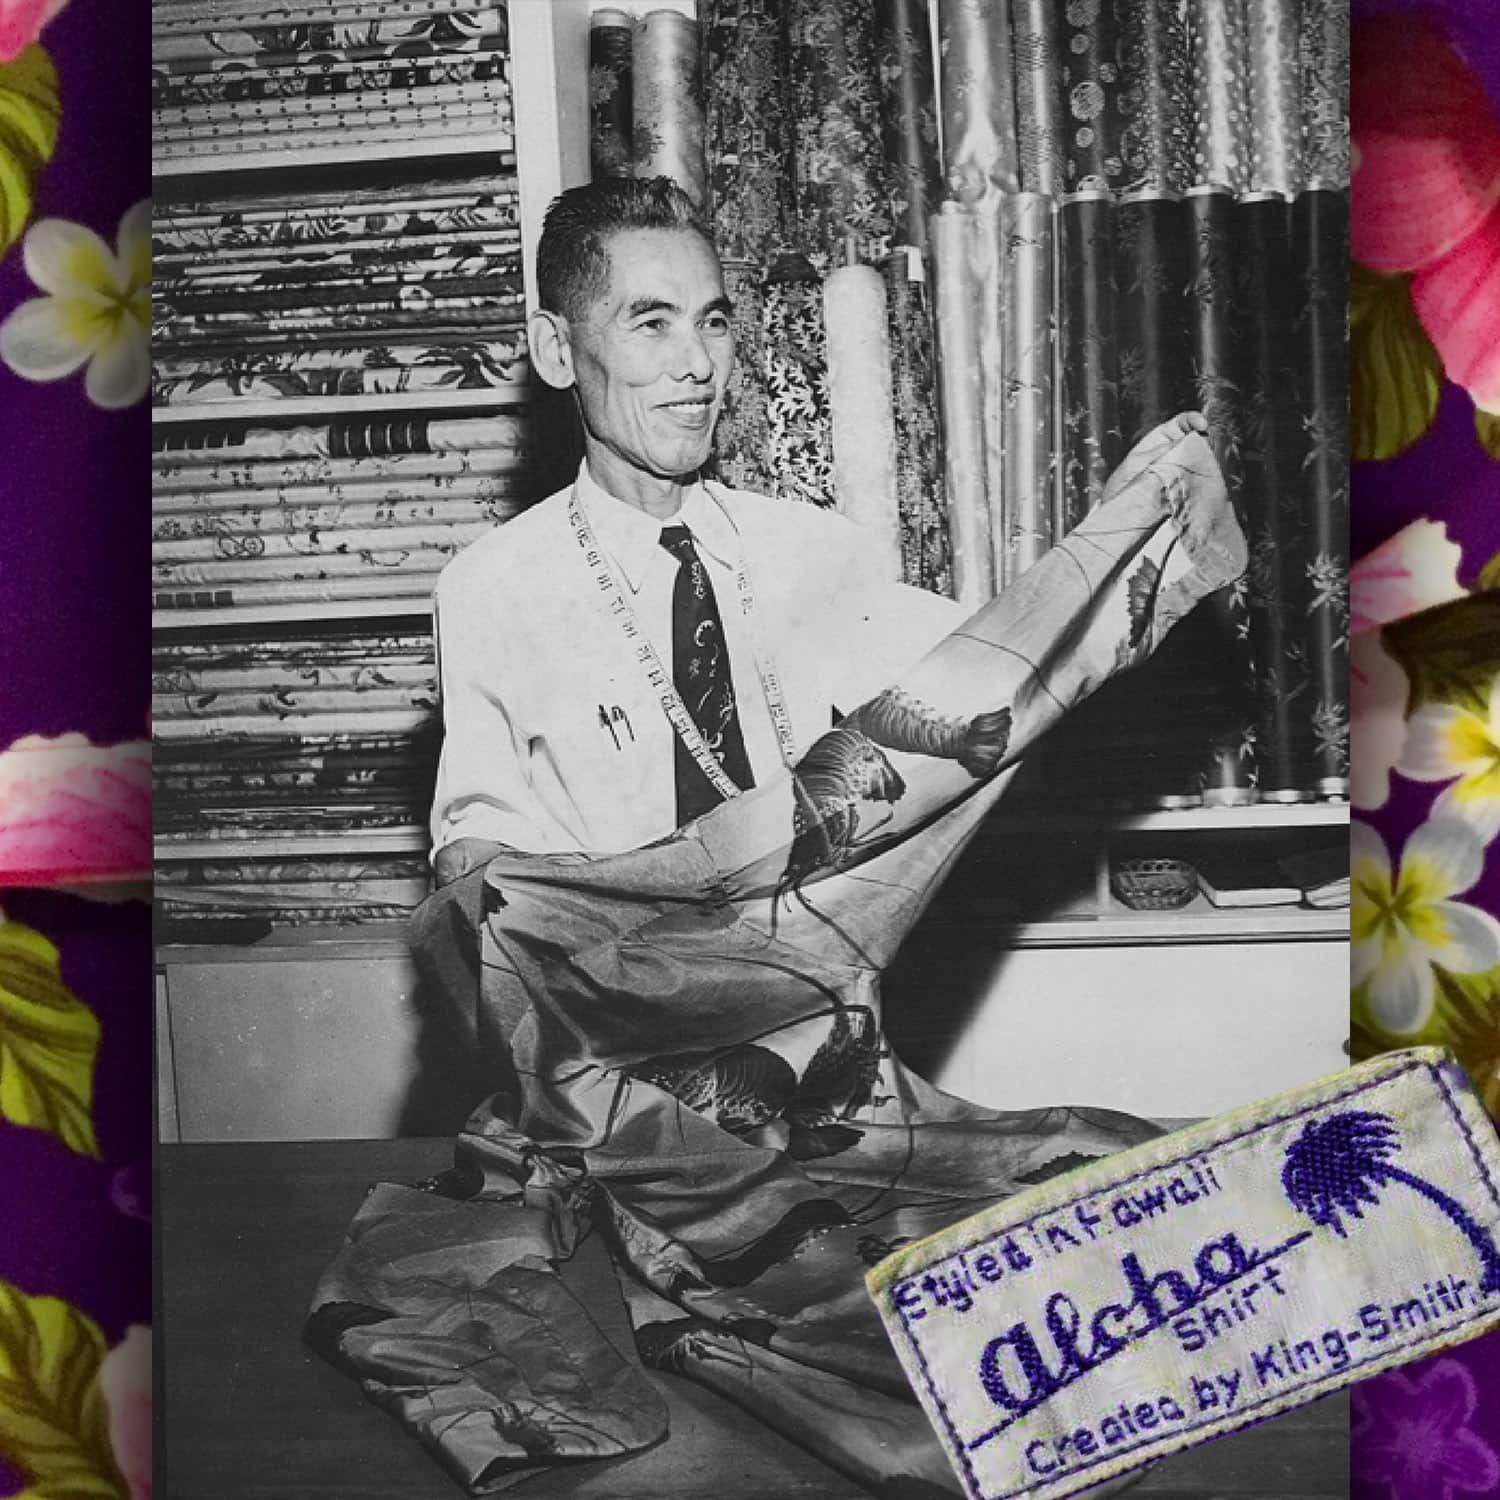 Koichiro Miyamoto, aka Musa-Shiya the Shirtmaker - one of the first Hawaii shirt tailors